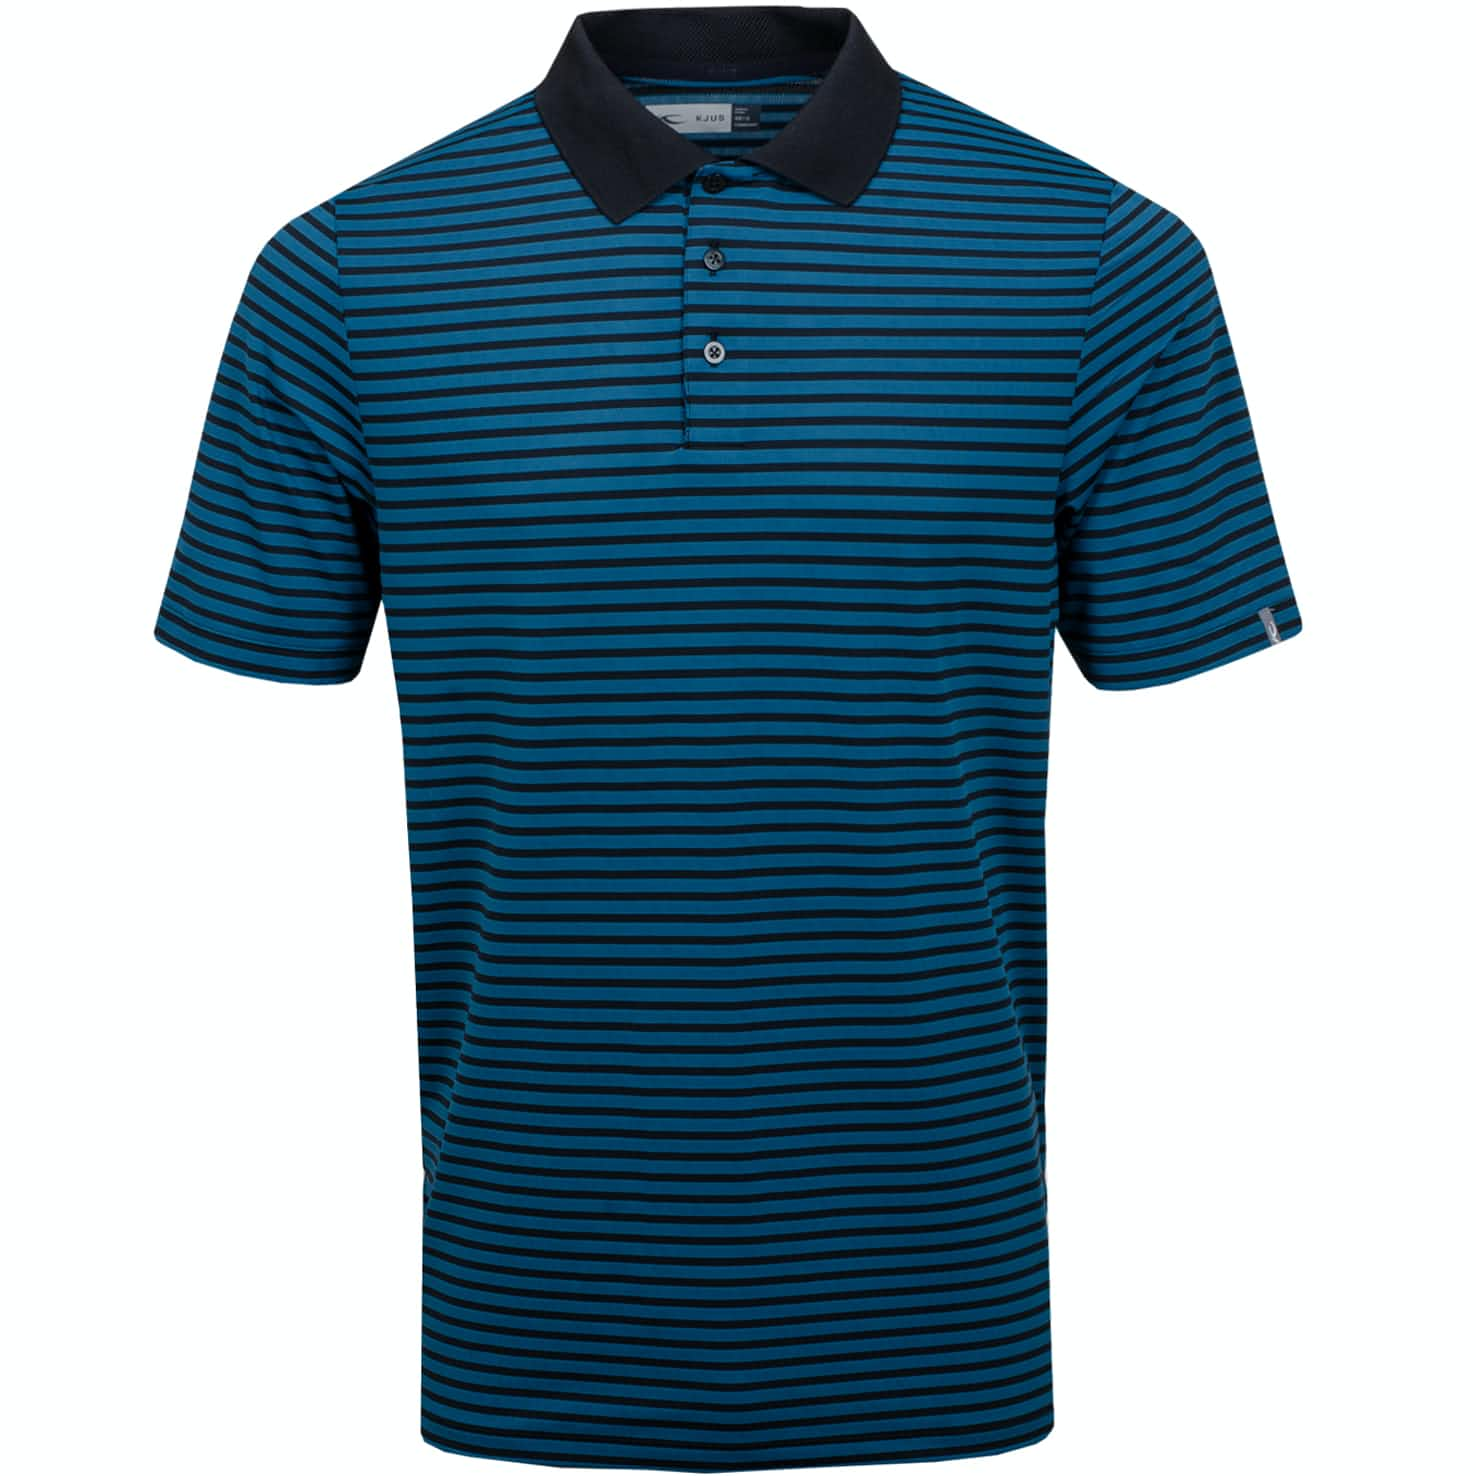 Luis Stripe Polo Deep Dive/Black - SS19